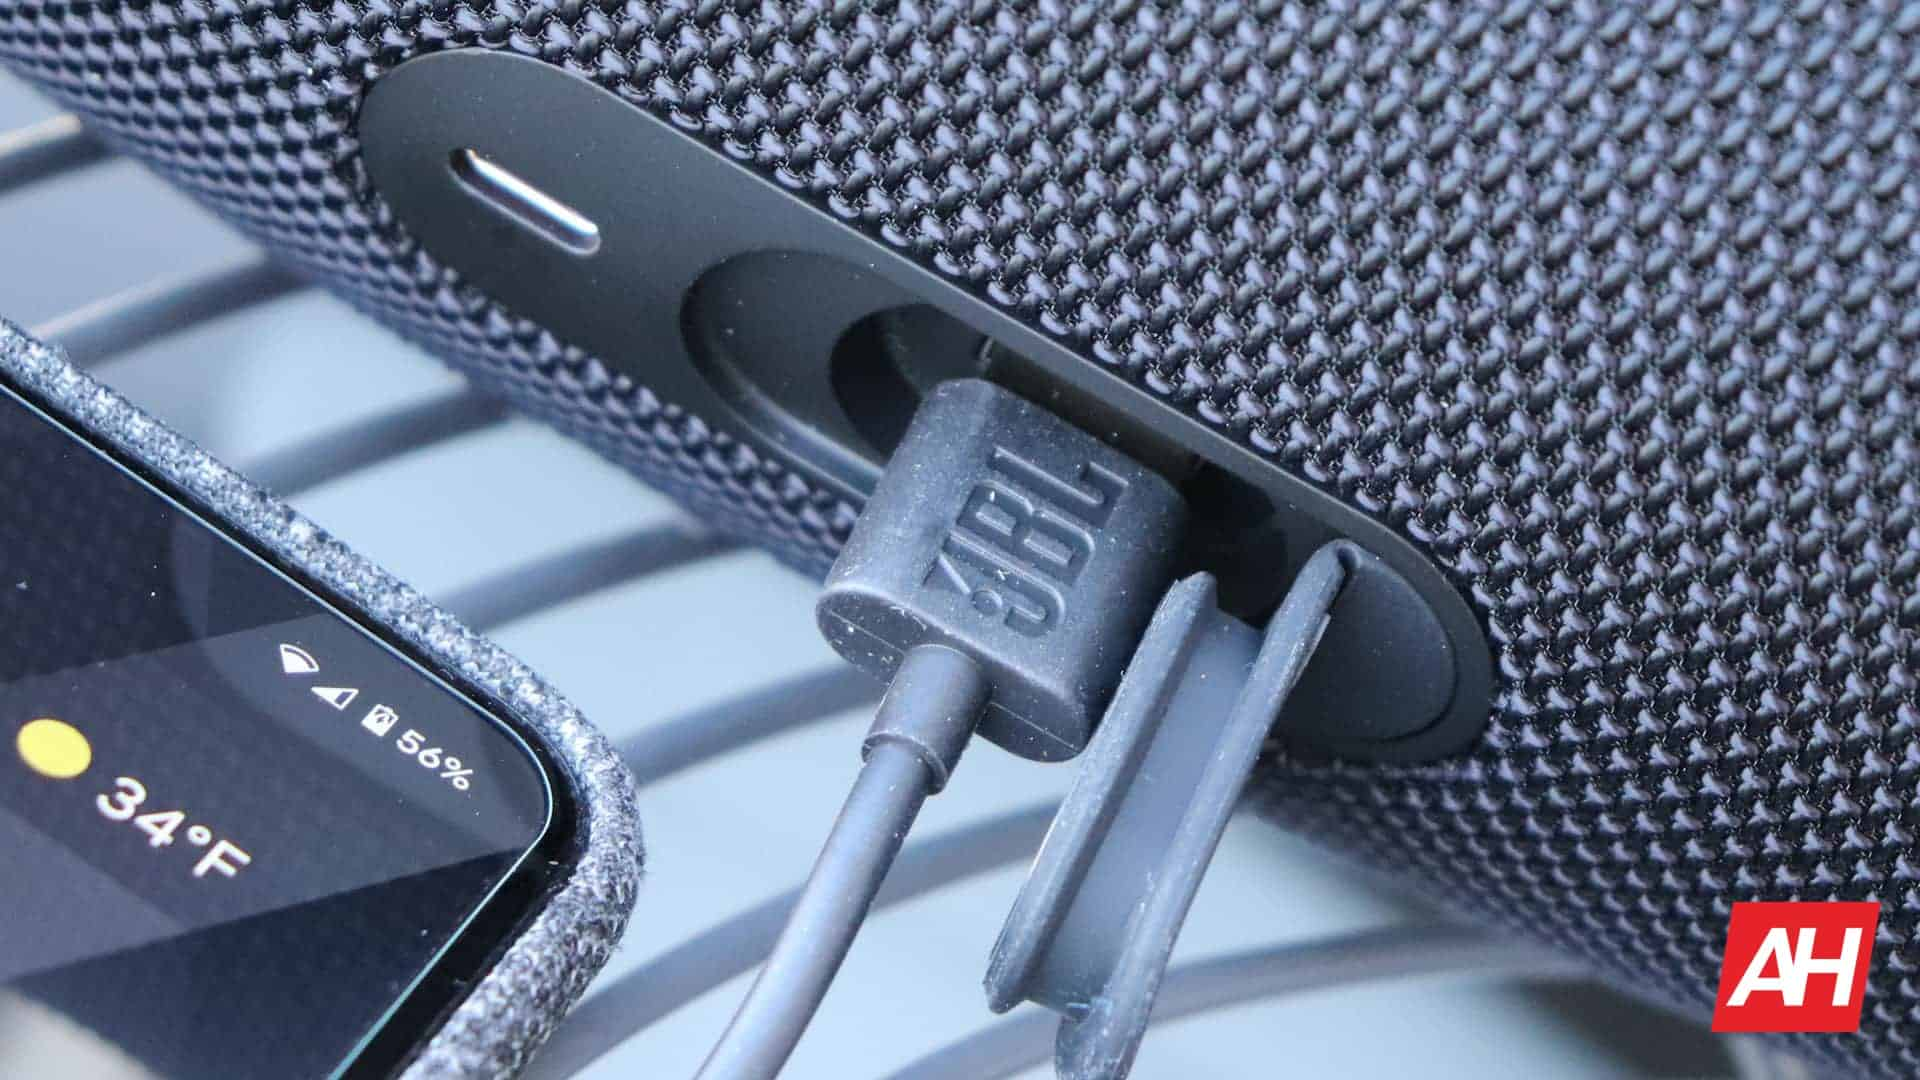 04 JBL Charge 5 Review connectivity features DG AH 2021